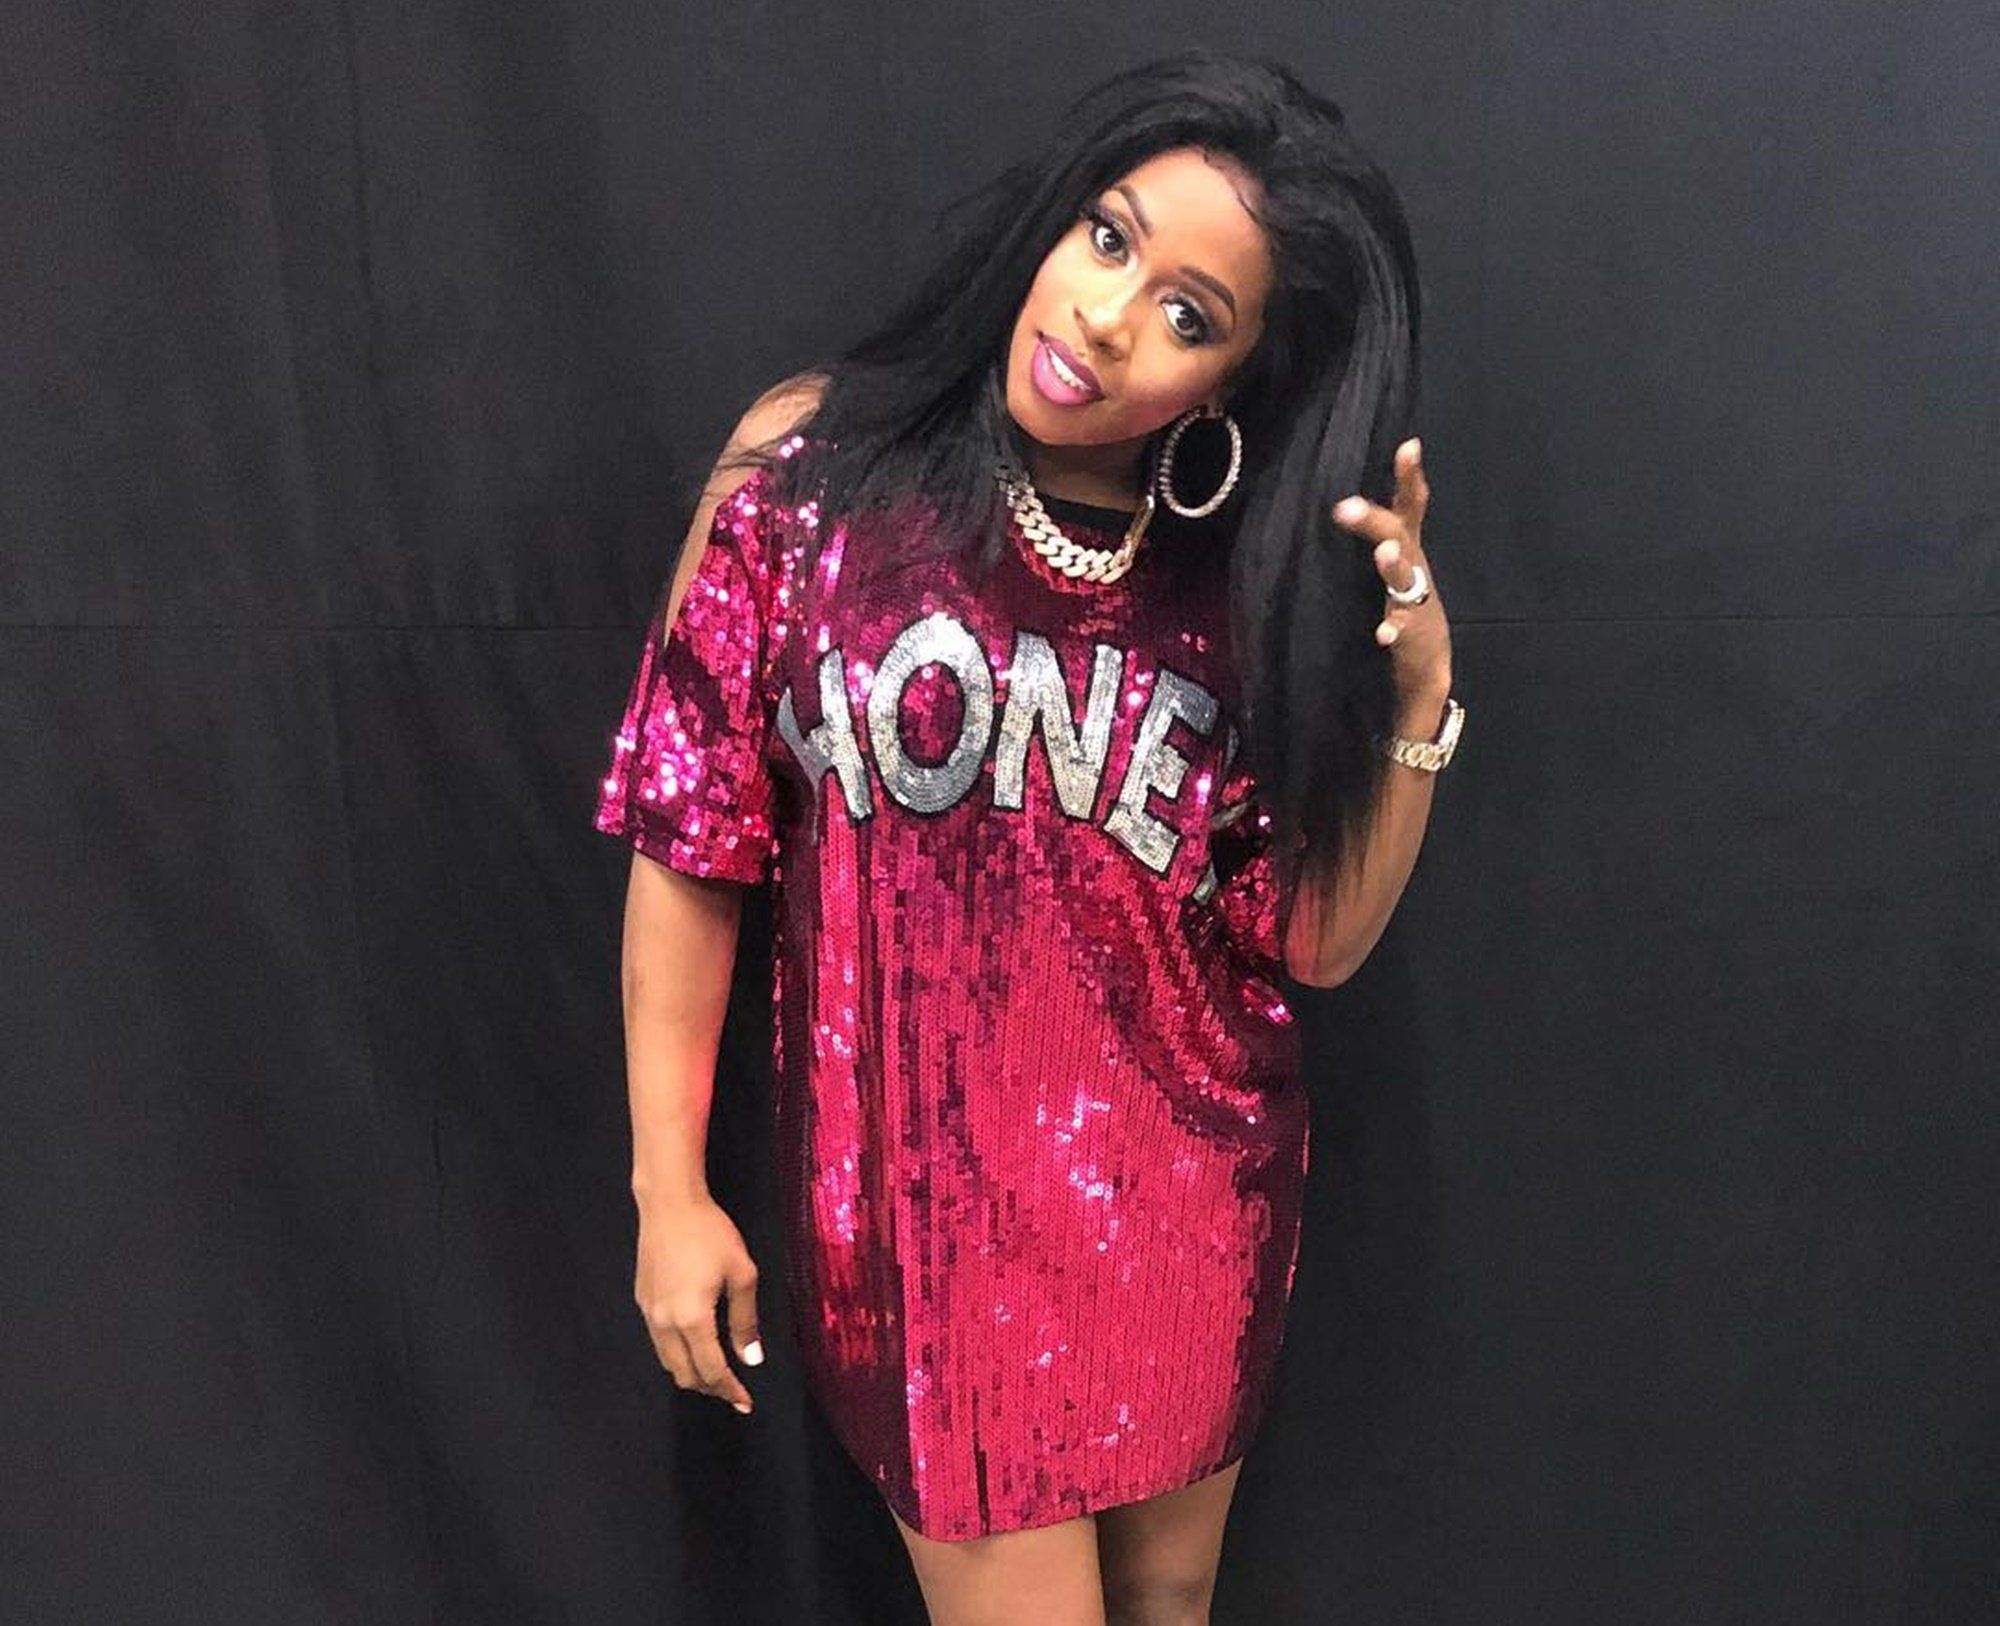 Remy Ma Is Blown Away By Her And Papoose's Golden Child - Here Are Her Videos With Some Adorable Moments - Tamar Braxton Is Here For This